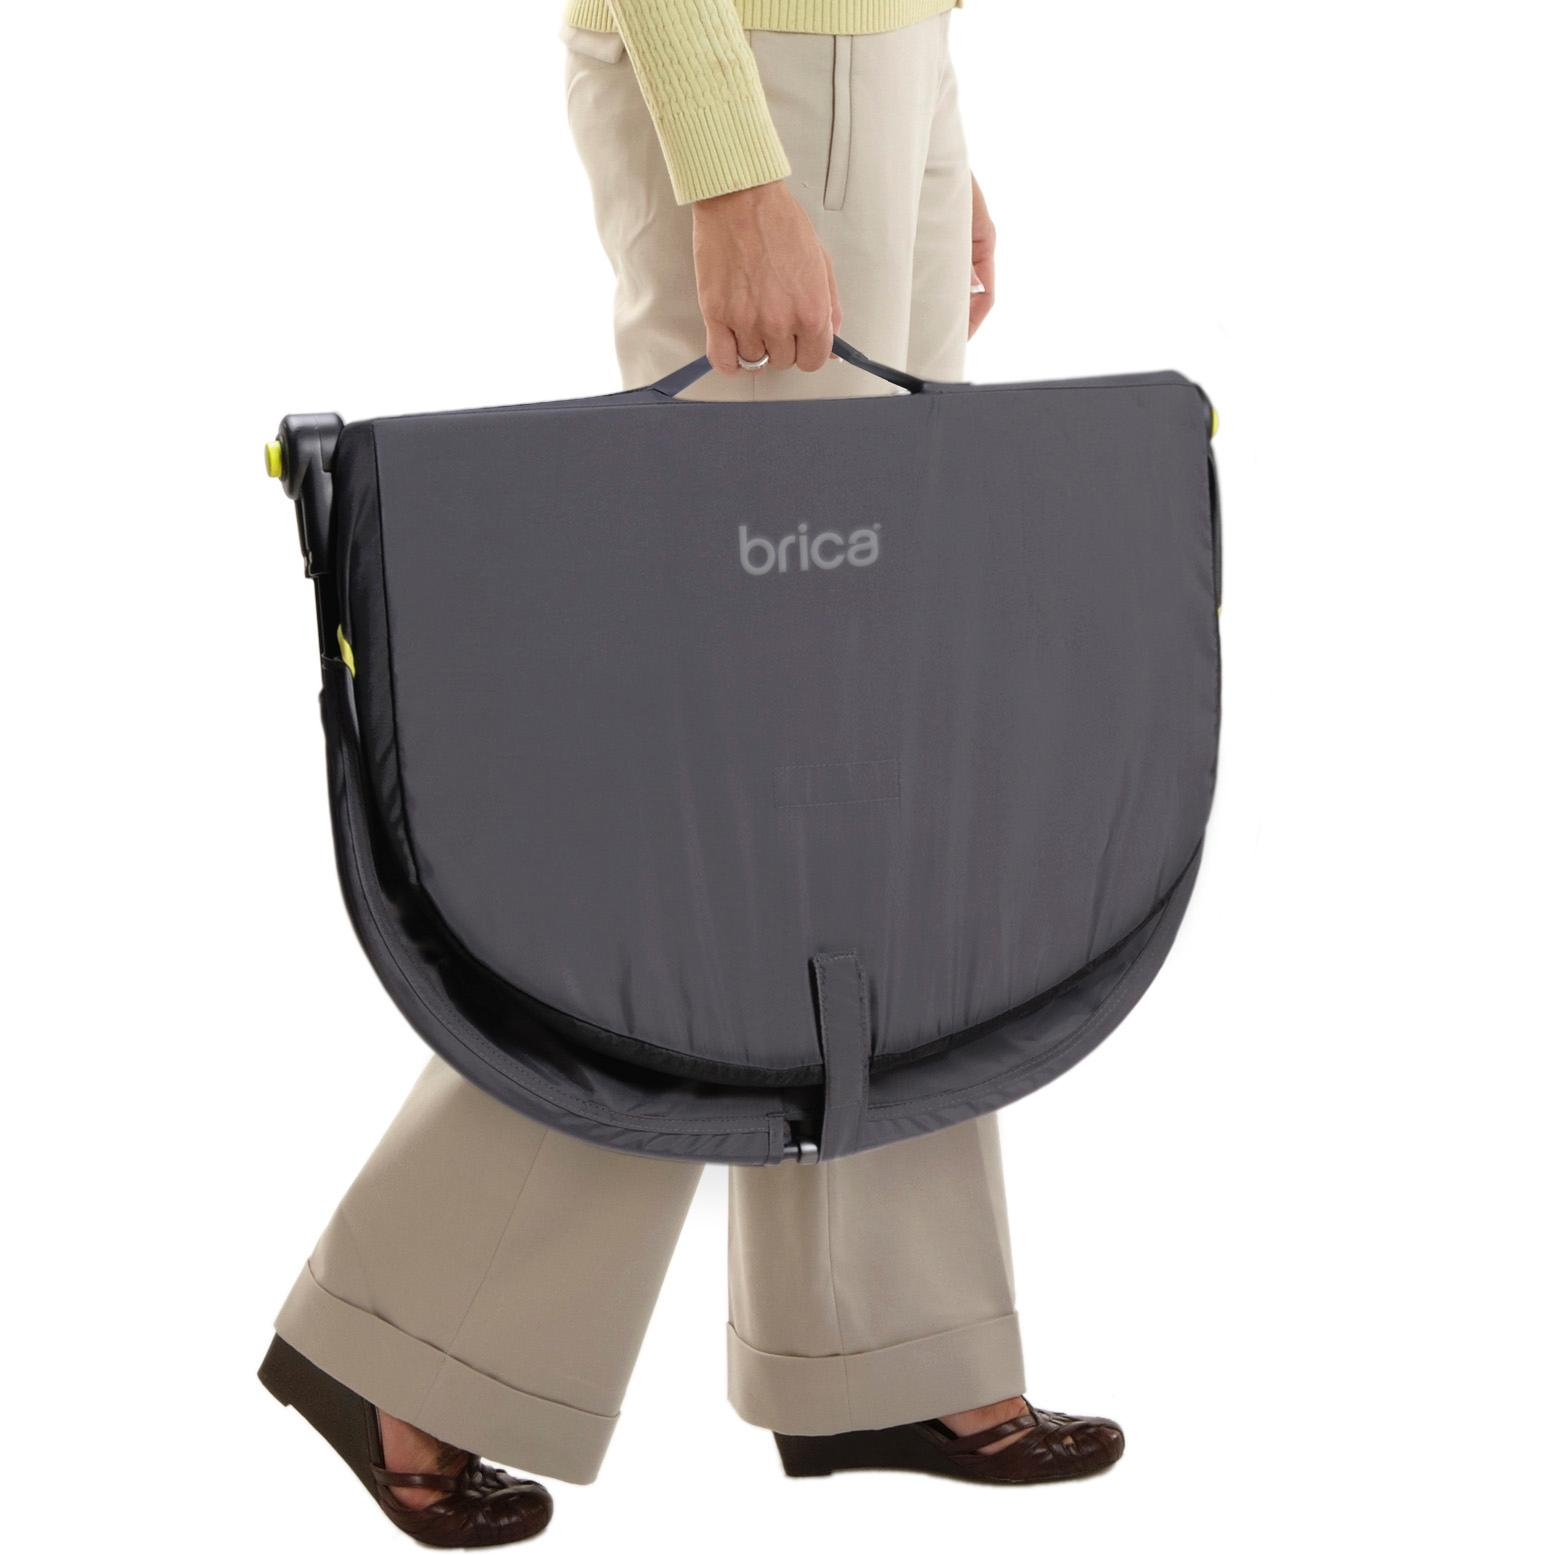 Amazon Com Brica Fold N Go Travel Bassinet Infant And Toddler Travel Beds Baby